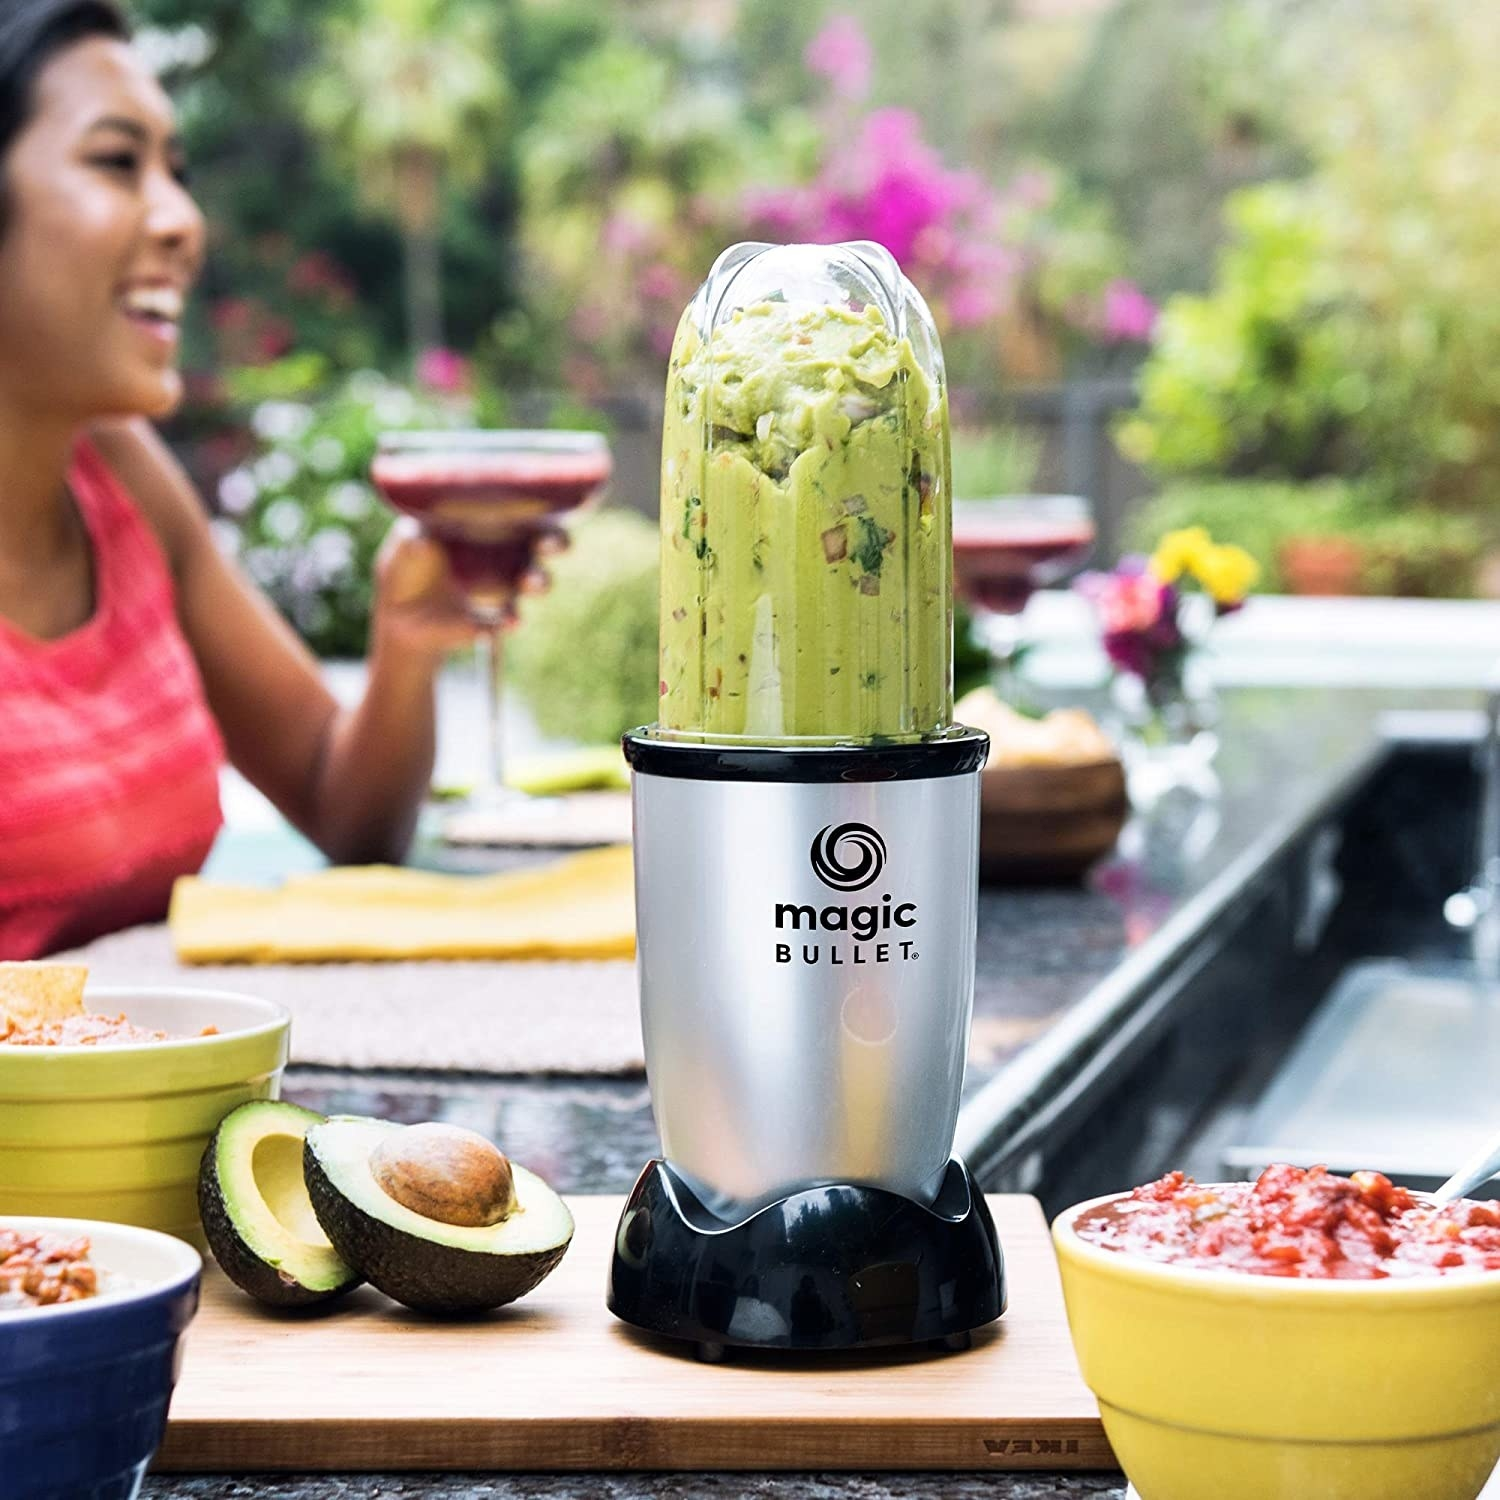 the magic bullet with guacamole and a person in the back